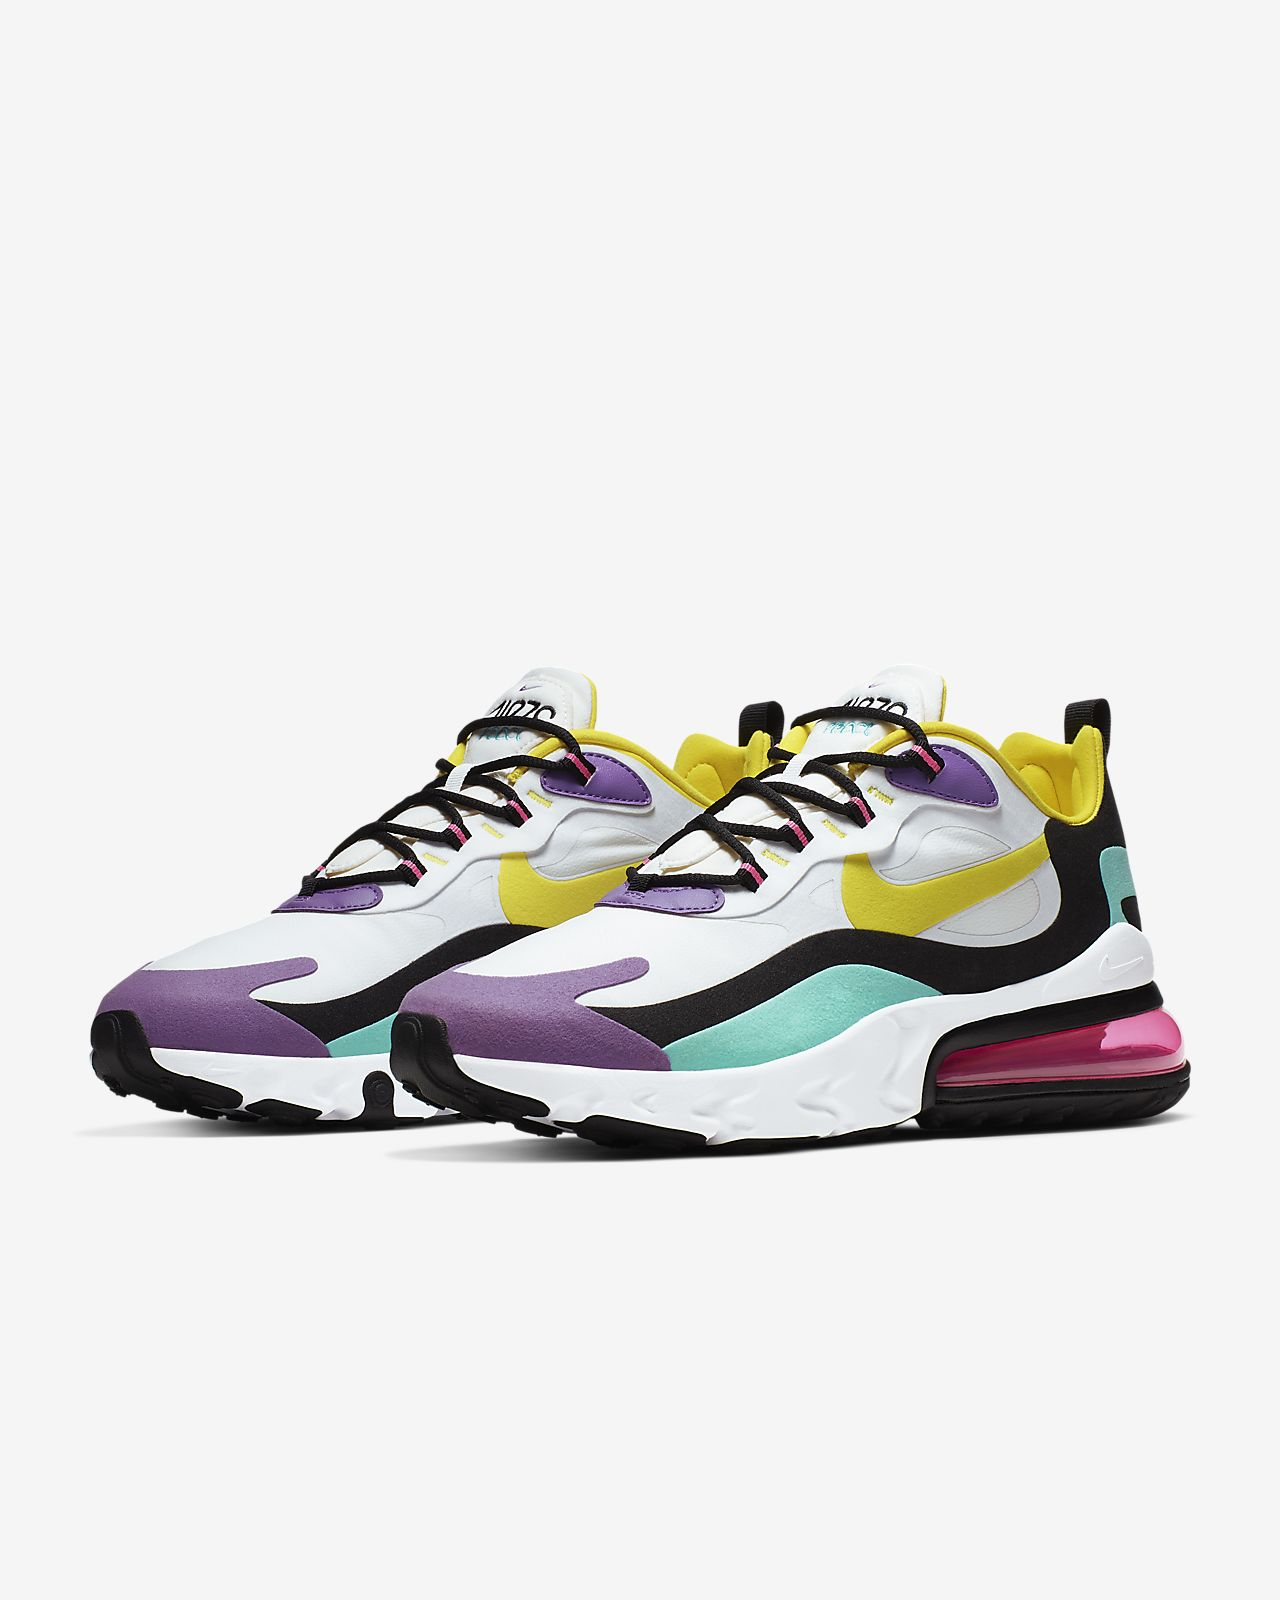 WORTH BUYING? Nike Air Max 270 REACT Review! Comparison to